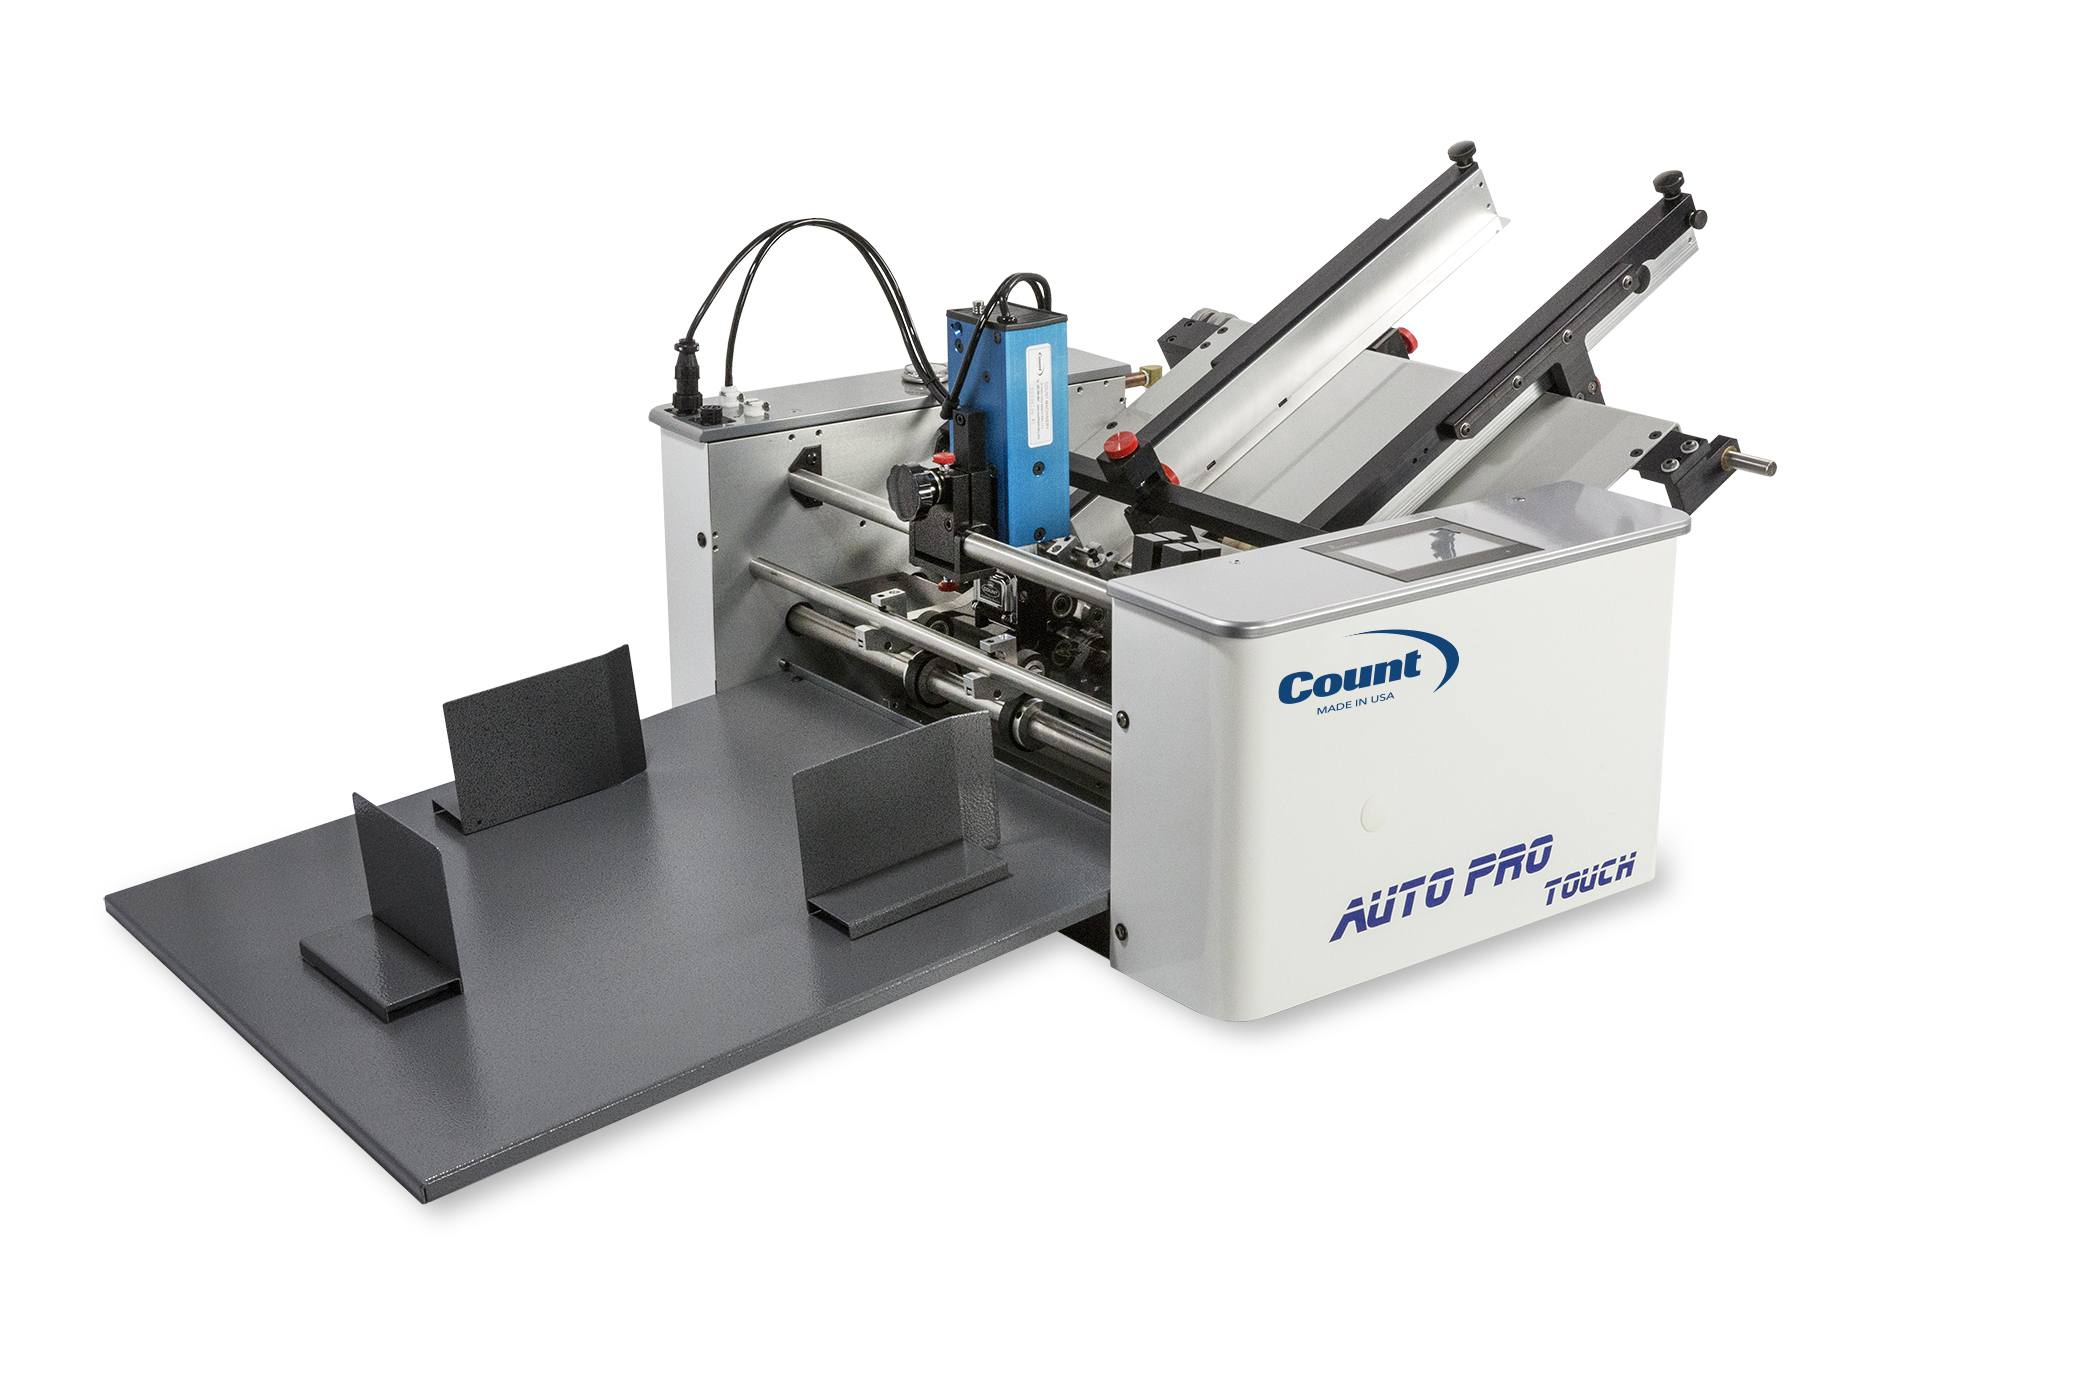 COUNT AutoPro Machine